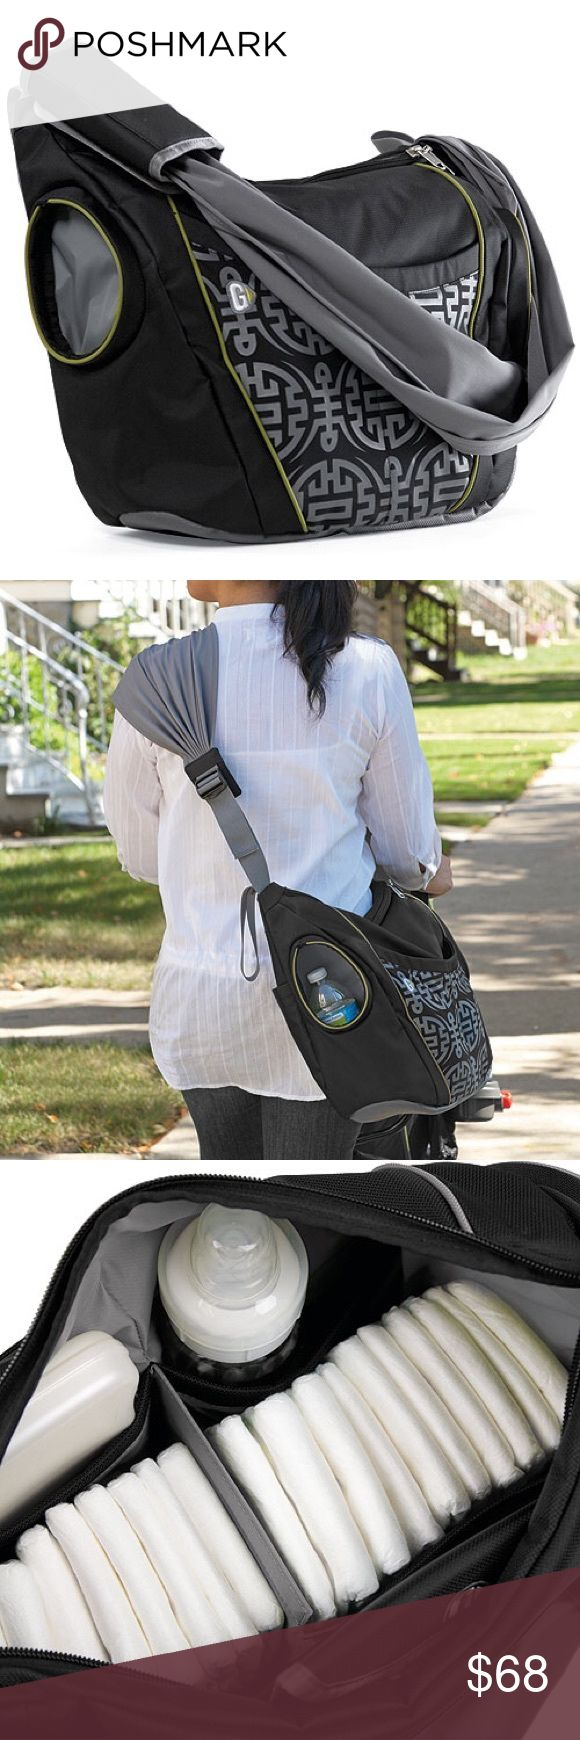 Original Go Gaga Diaper/Messenger Bag Ergonomic strap distributes the weight of the bag across your back & shoulders made of a soft, stretch nylon that's wrinkle and stain resistant. The bag features 2 insulated bottle pockets on either side of the bag that are large enough for baby bottles, sippy cups, or water bottles. Inside, there are 5 pockets and a center divider that velcros into place for more organization when you need it. The back panel features a large pocket that fits the…